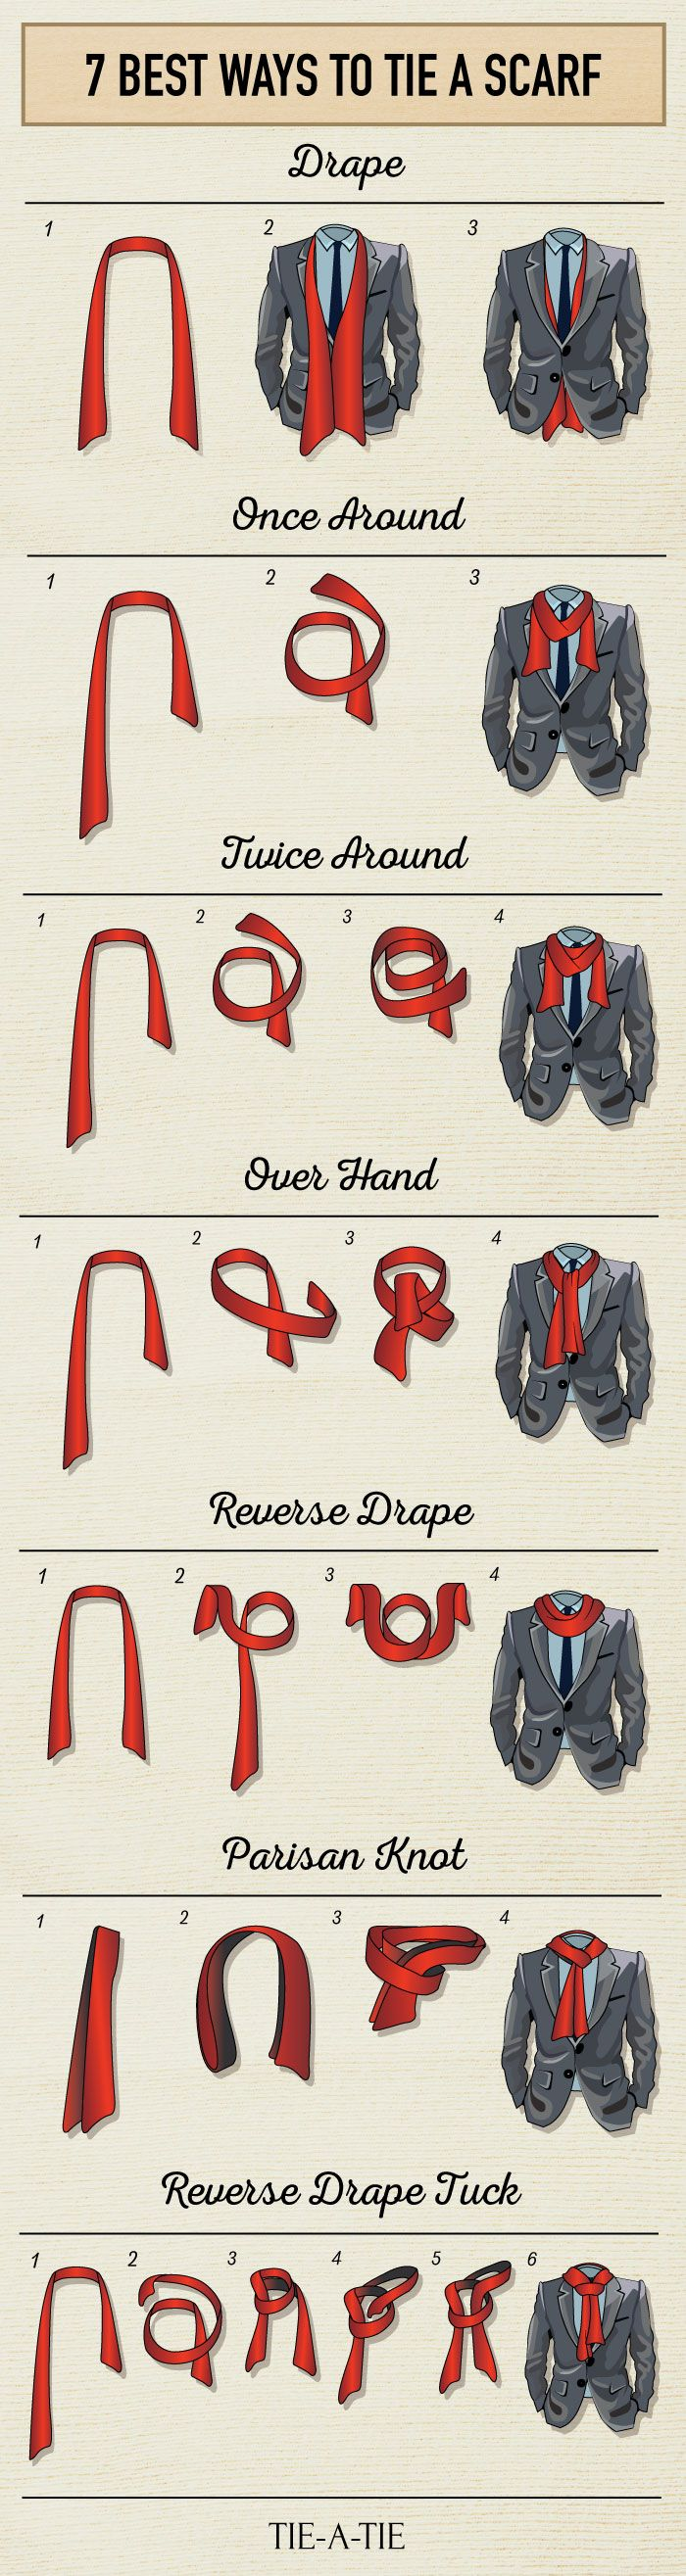 Here are the 7 Best Ways to Tie Your Scarf: http://www.tie-a-tie.net/how-to-tie-a-scarf.html